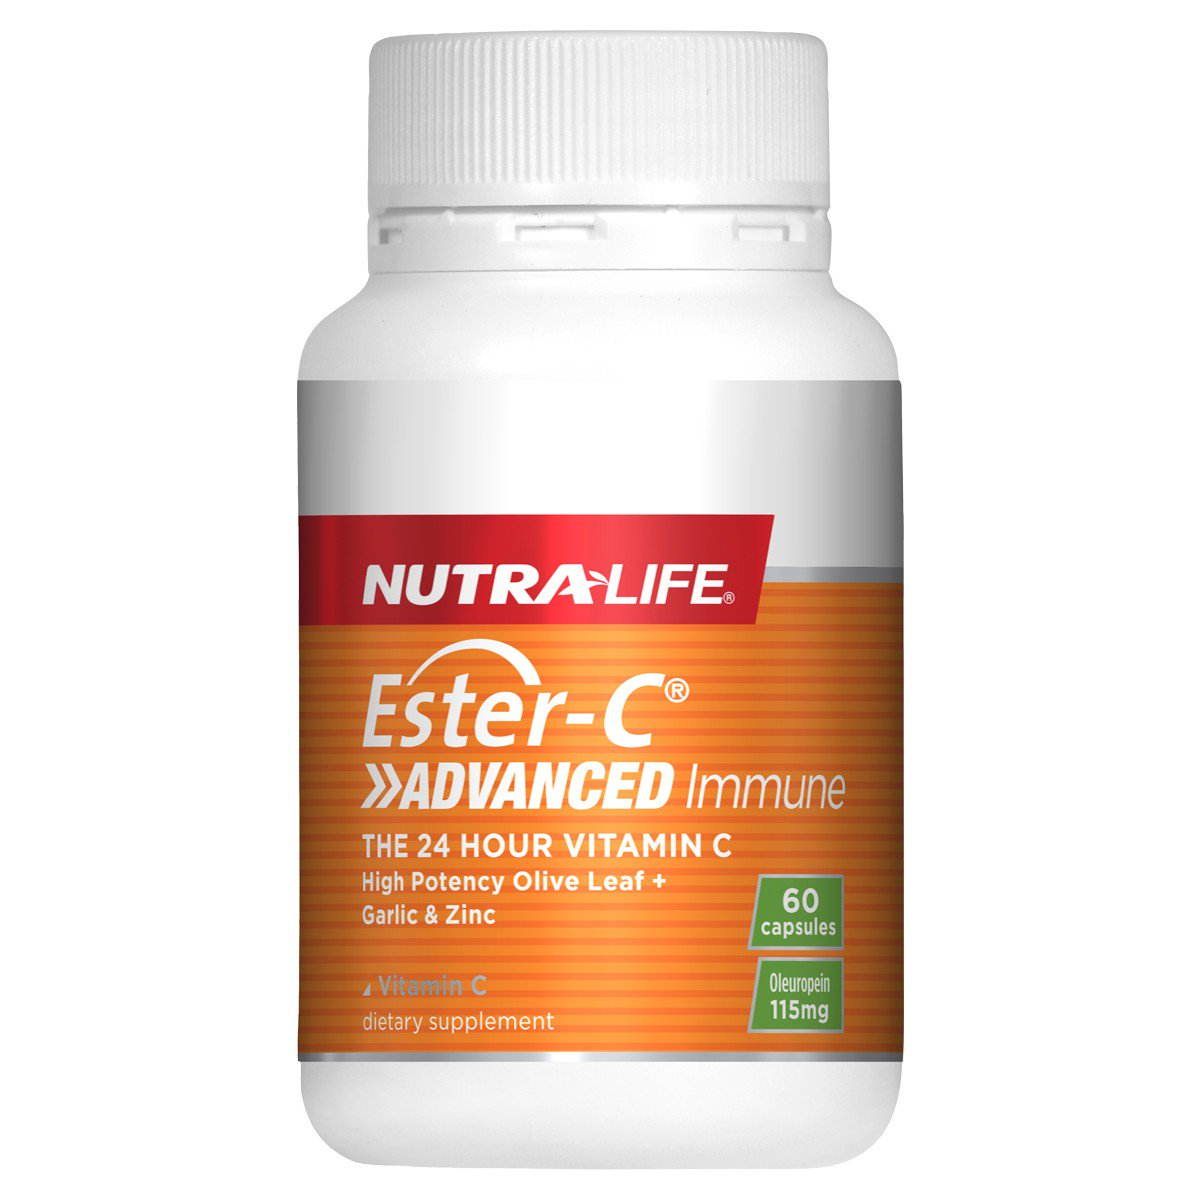 Nutra-Life Ester C Advanced Immune 60 caps